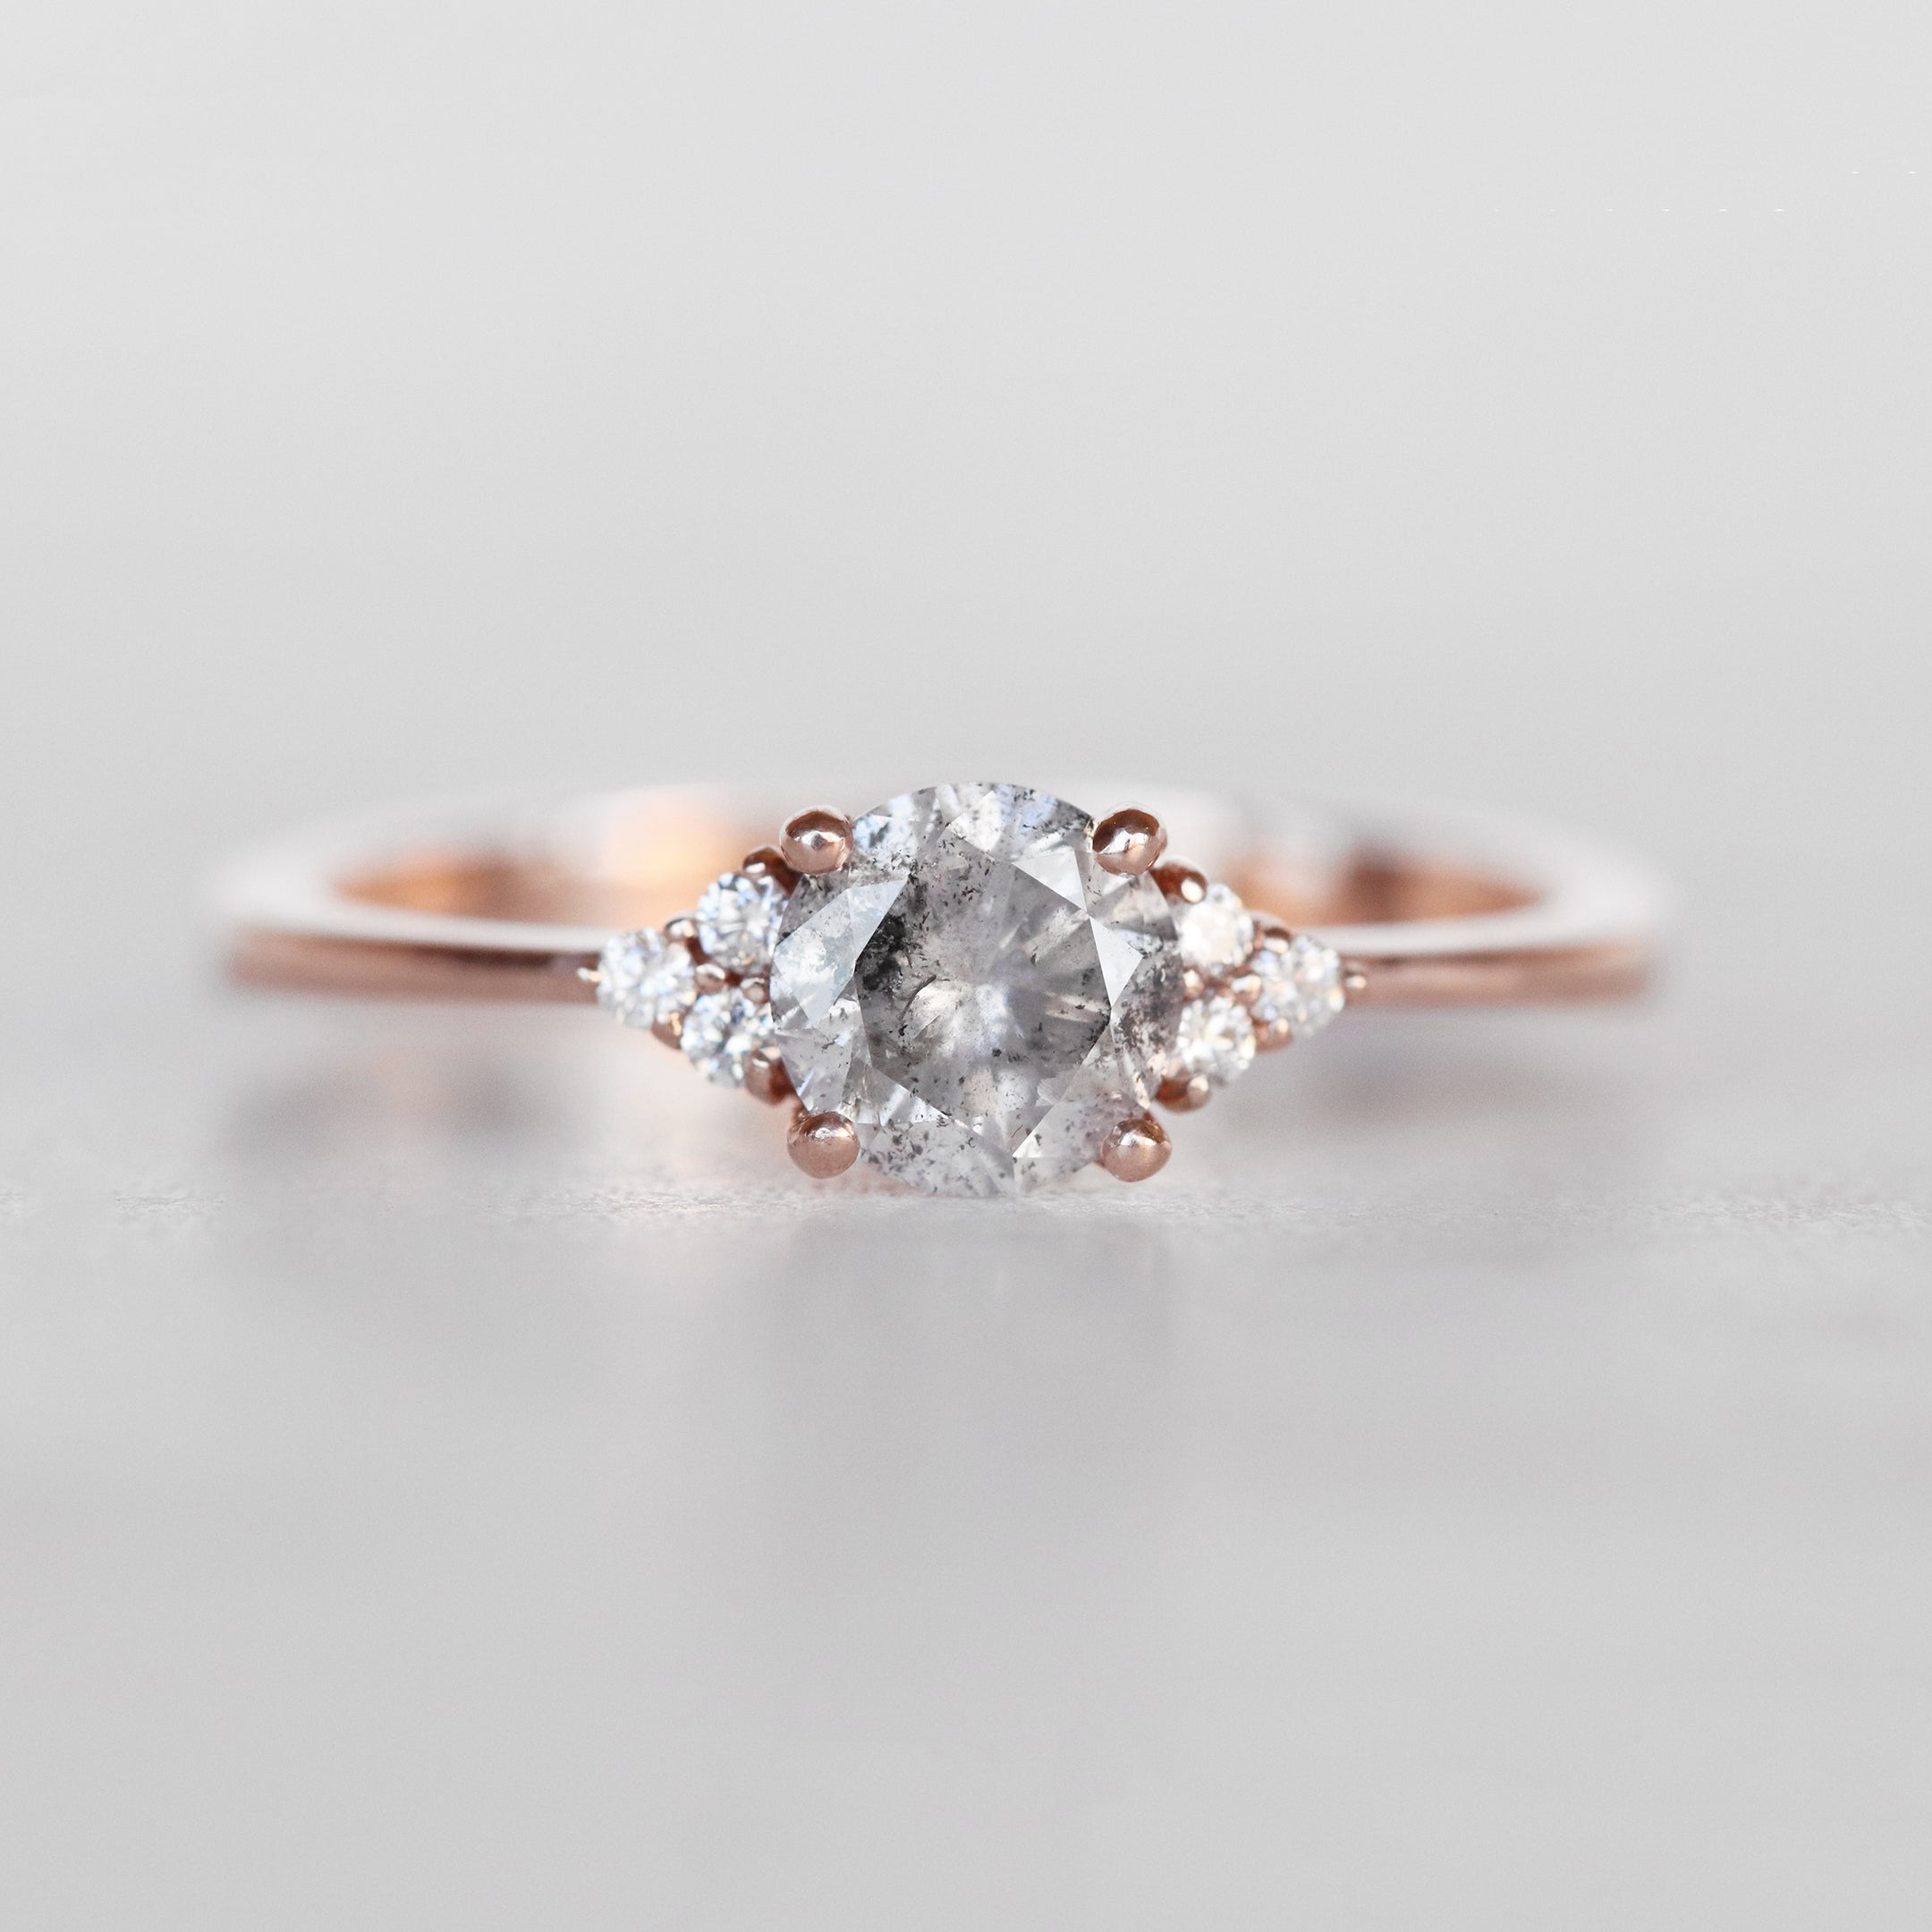 Imogene Ring with a .70 Carat Celestial Diamond and Six White Accents in 10k Rose Gold - Ready to Size and Ship - Salt & Pepper Celestial Diamond Engagement Rings and Wedding Bands  by Midwinter Co.